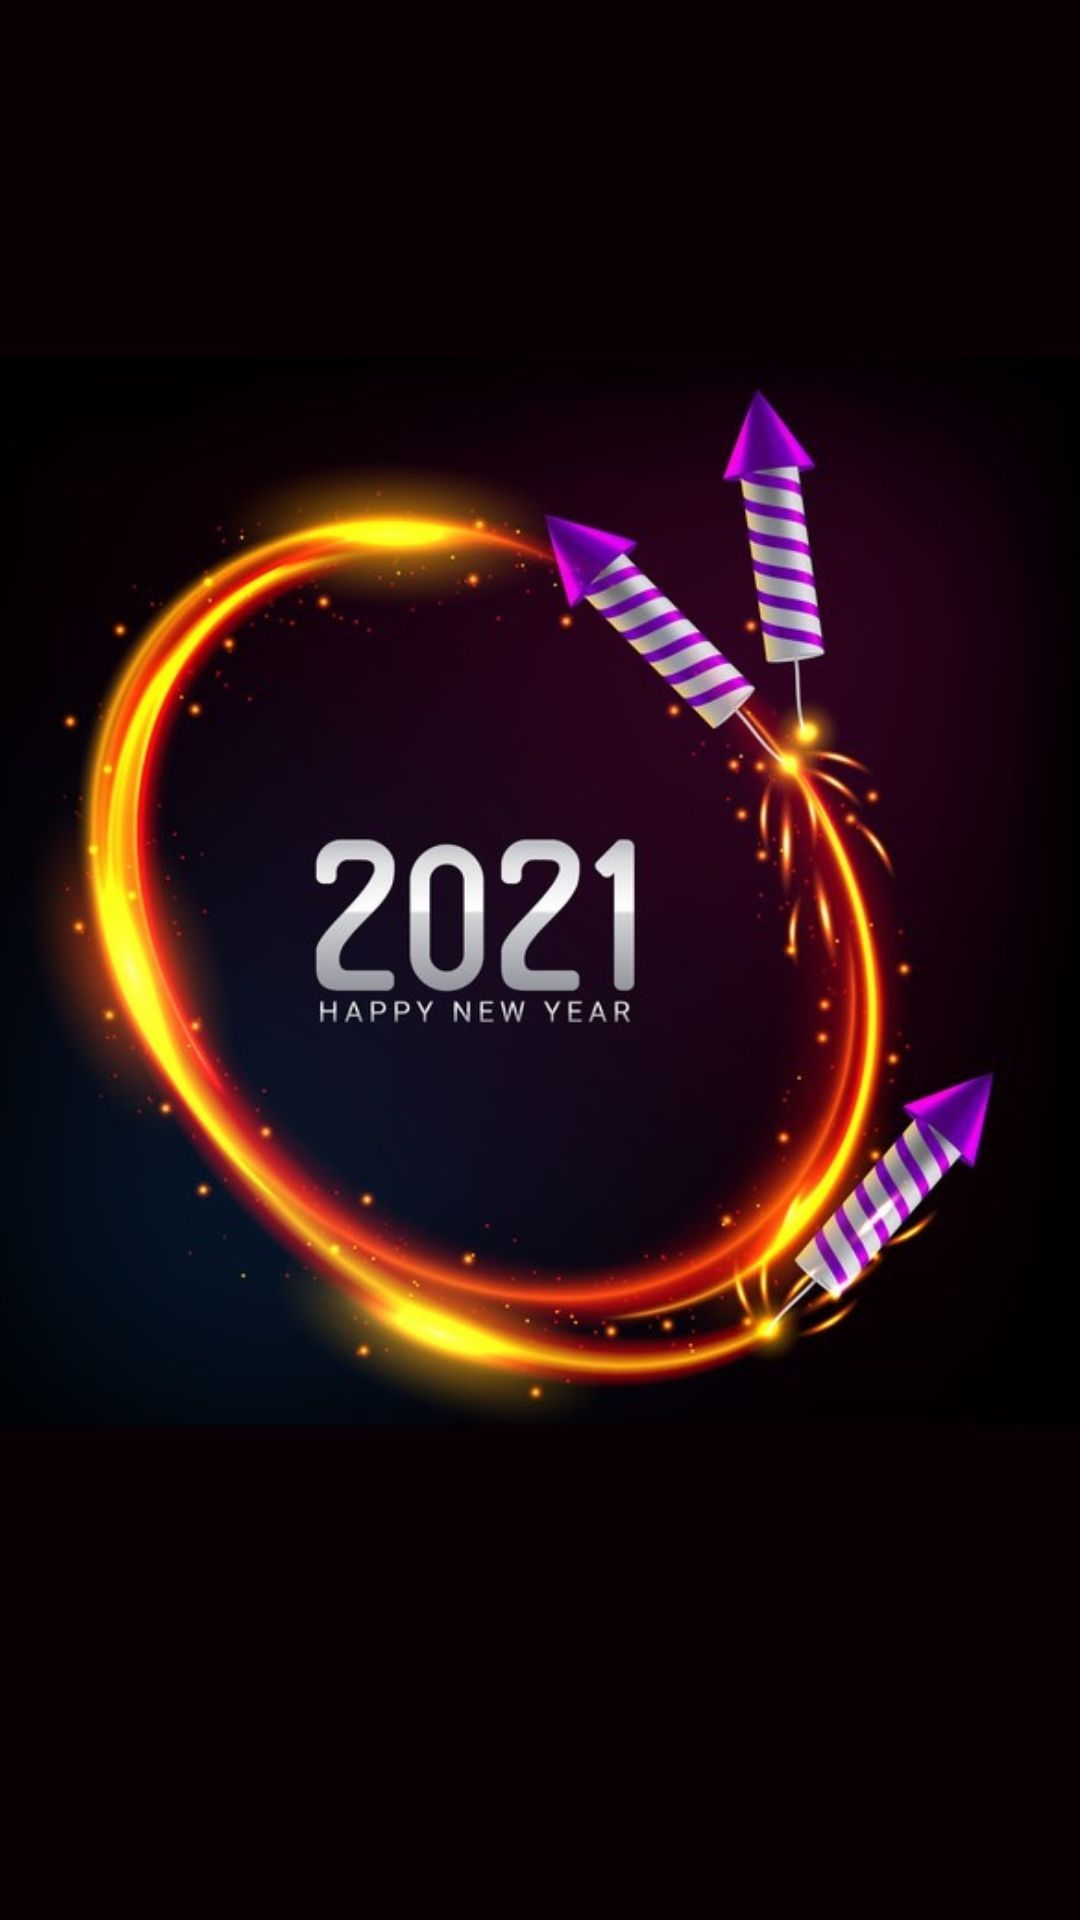 New Year Fireworks Wallpapers Beautiful 2021 Happy New Year Wallpaper New Year Fireworks Happy New Year Pictures New year 2021 orange hd background